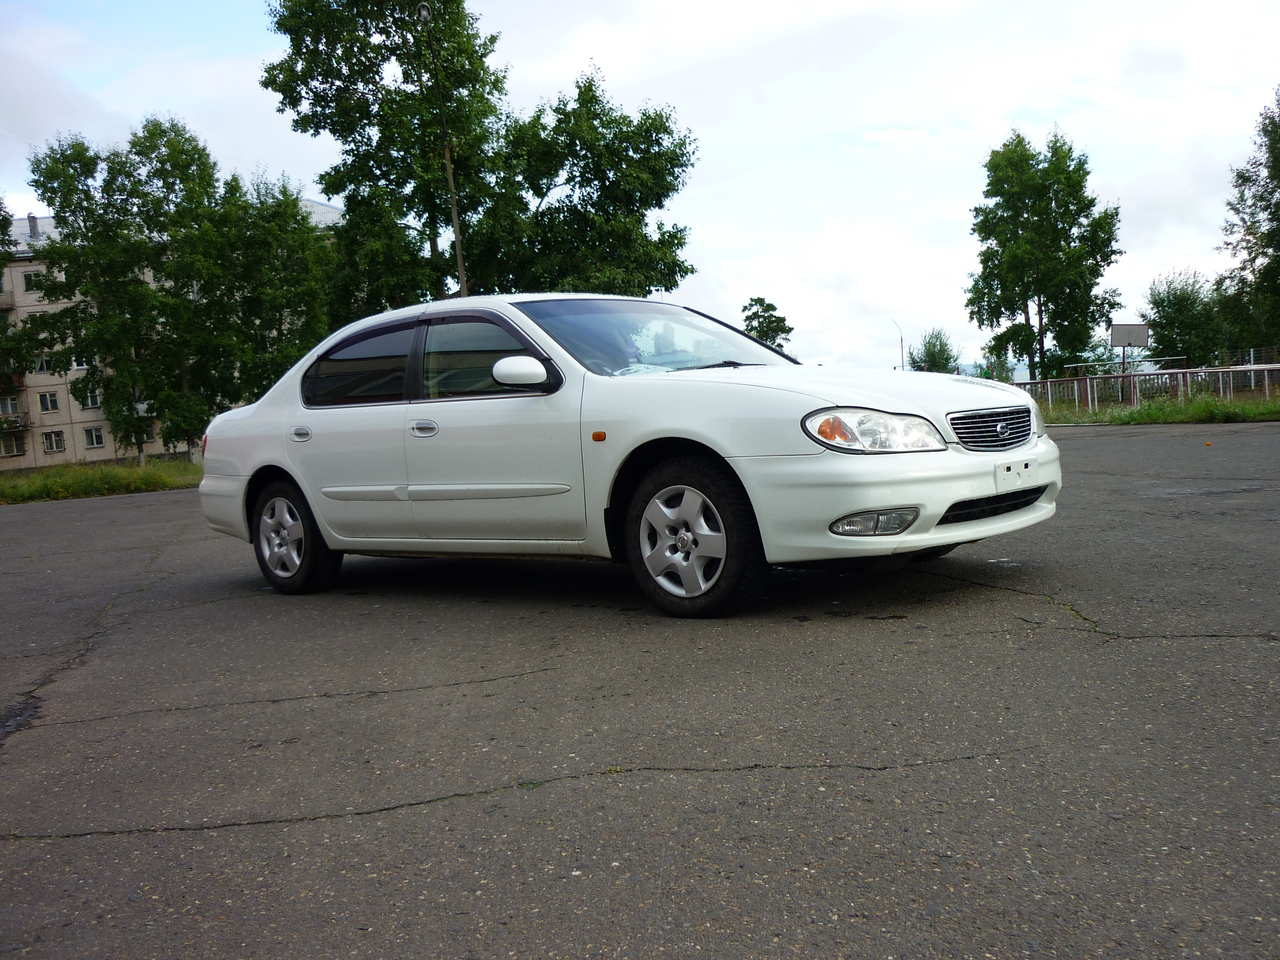 1999 Nissan Cefiro For Sale 2 0 Gasoline Ff Automatic